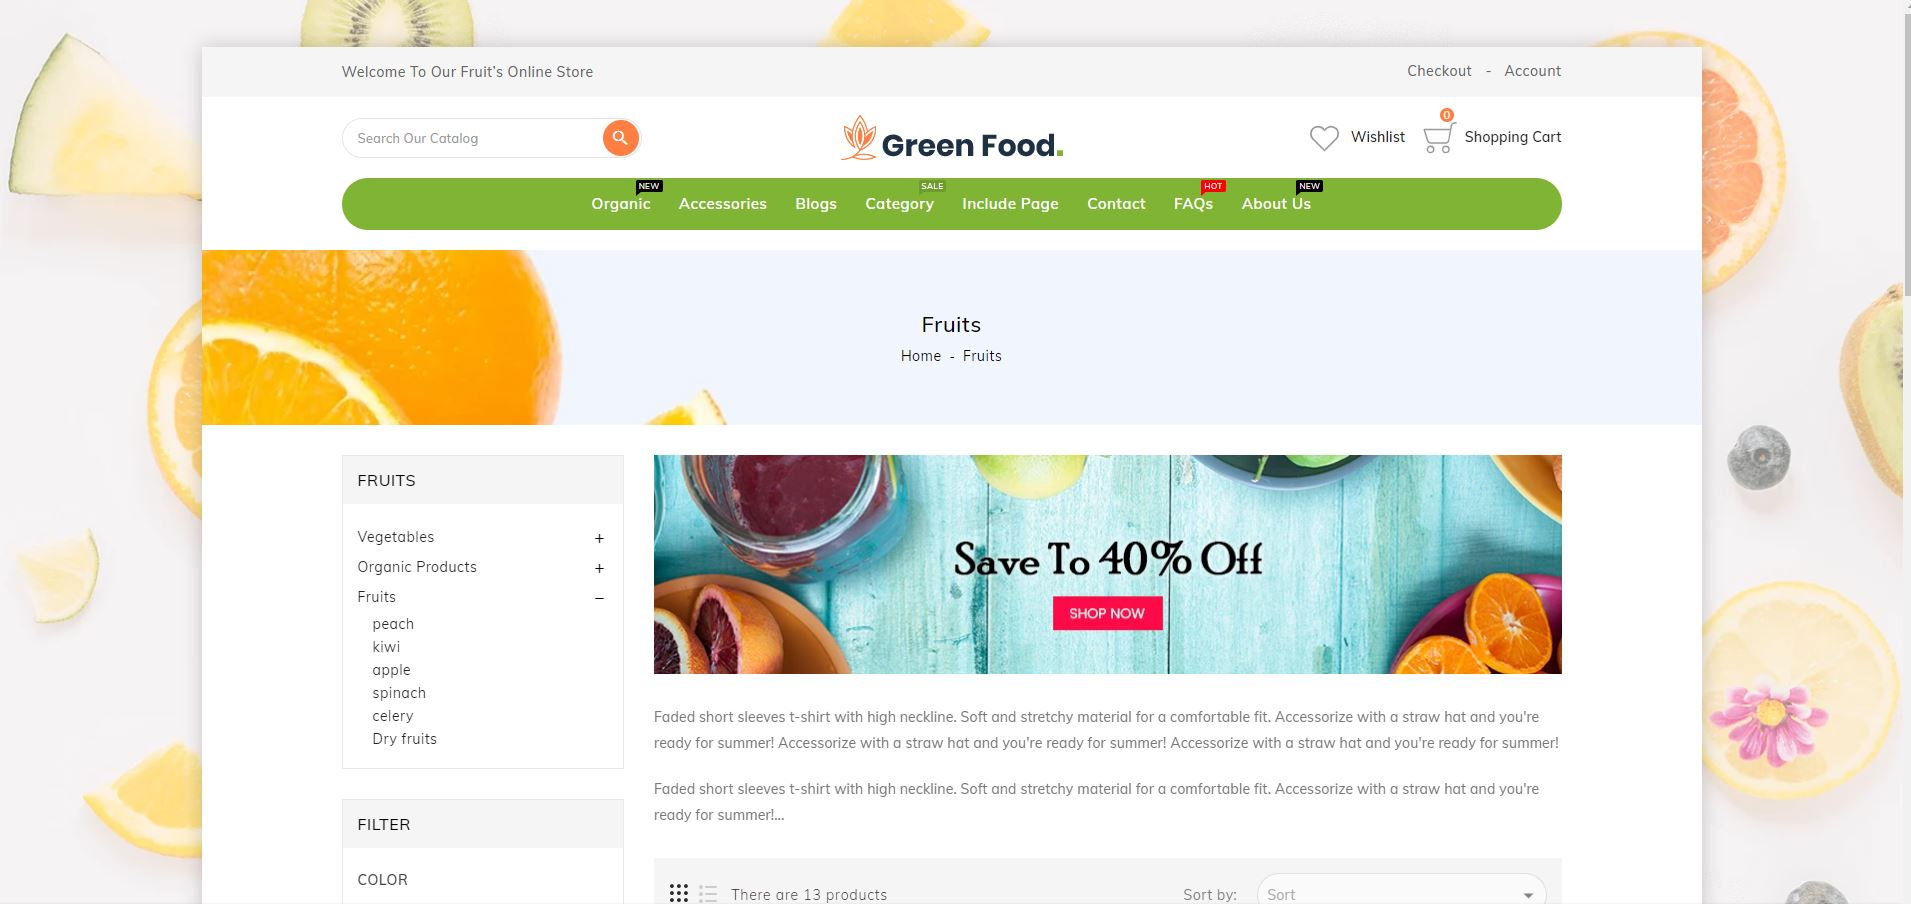 Greenfood Organic Store Fruits and vegetables Shopify Theme